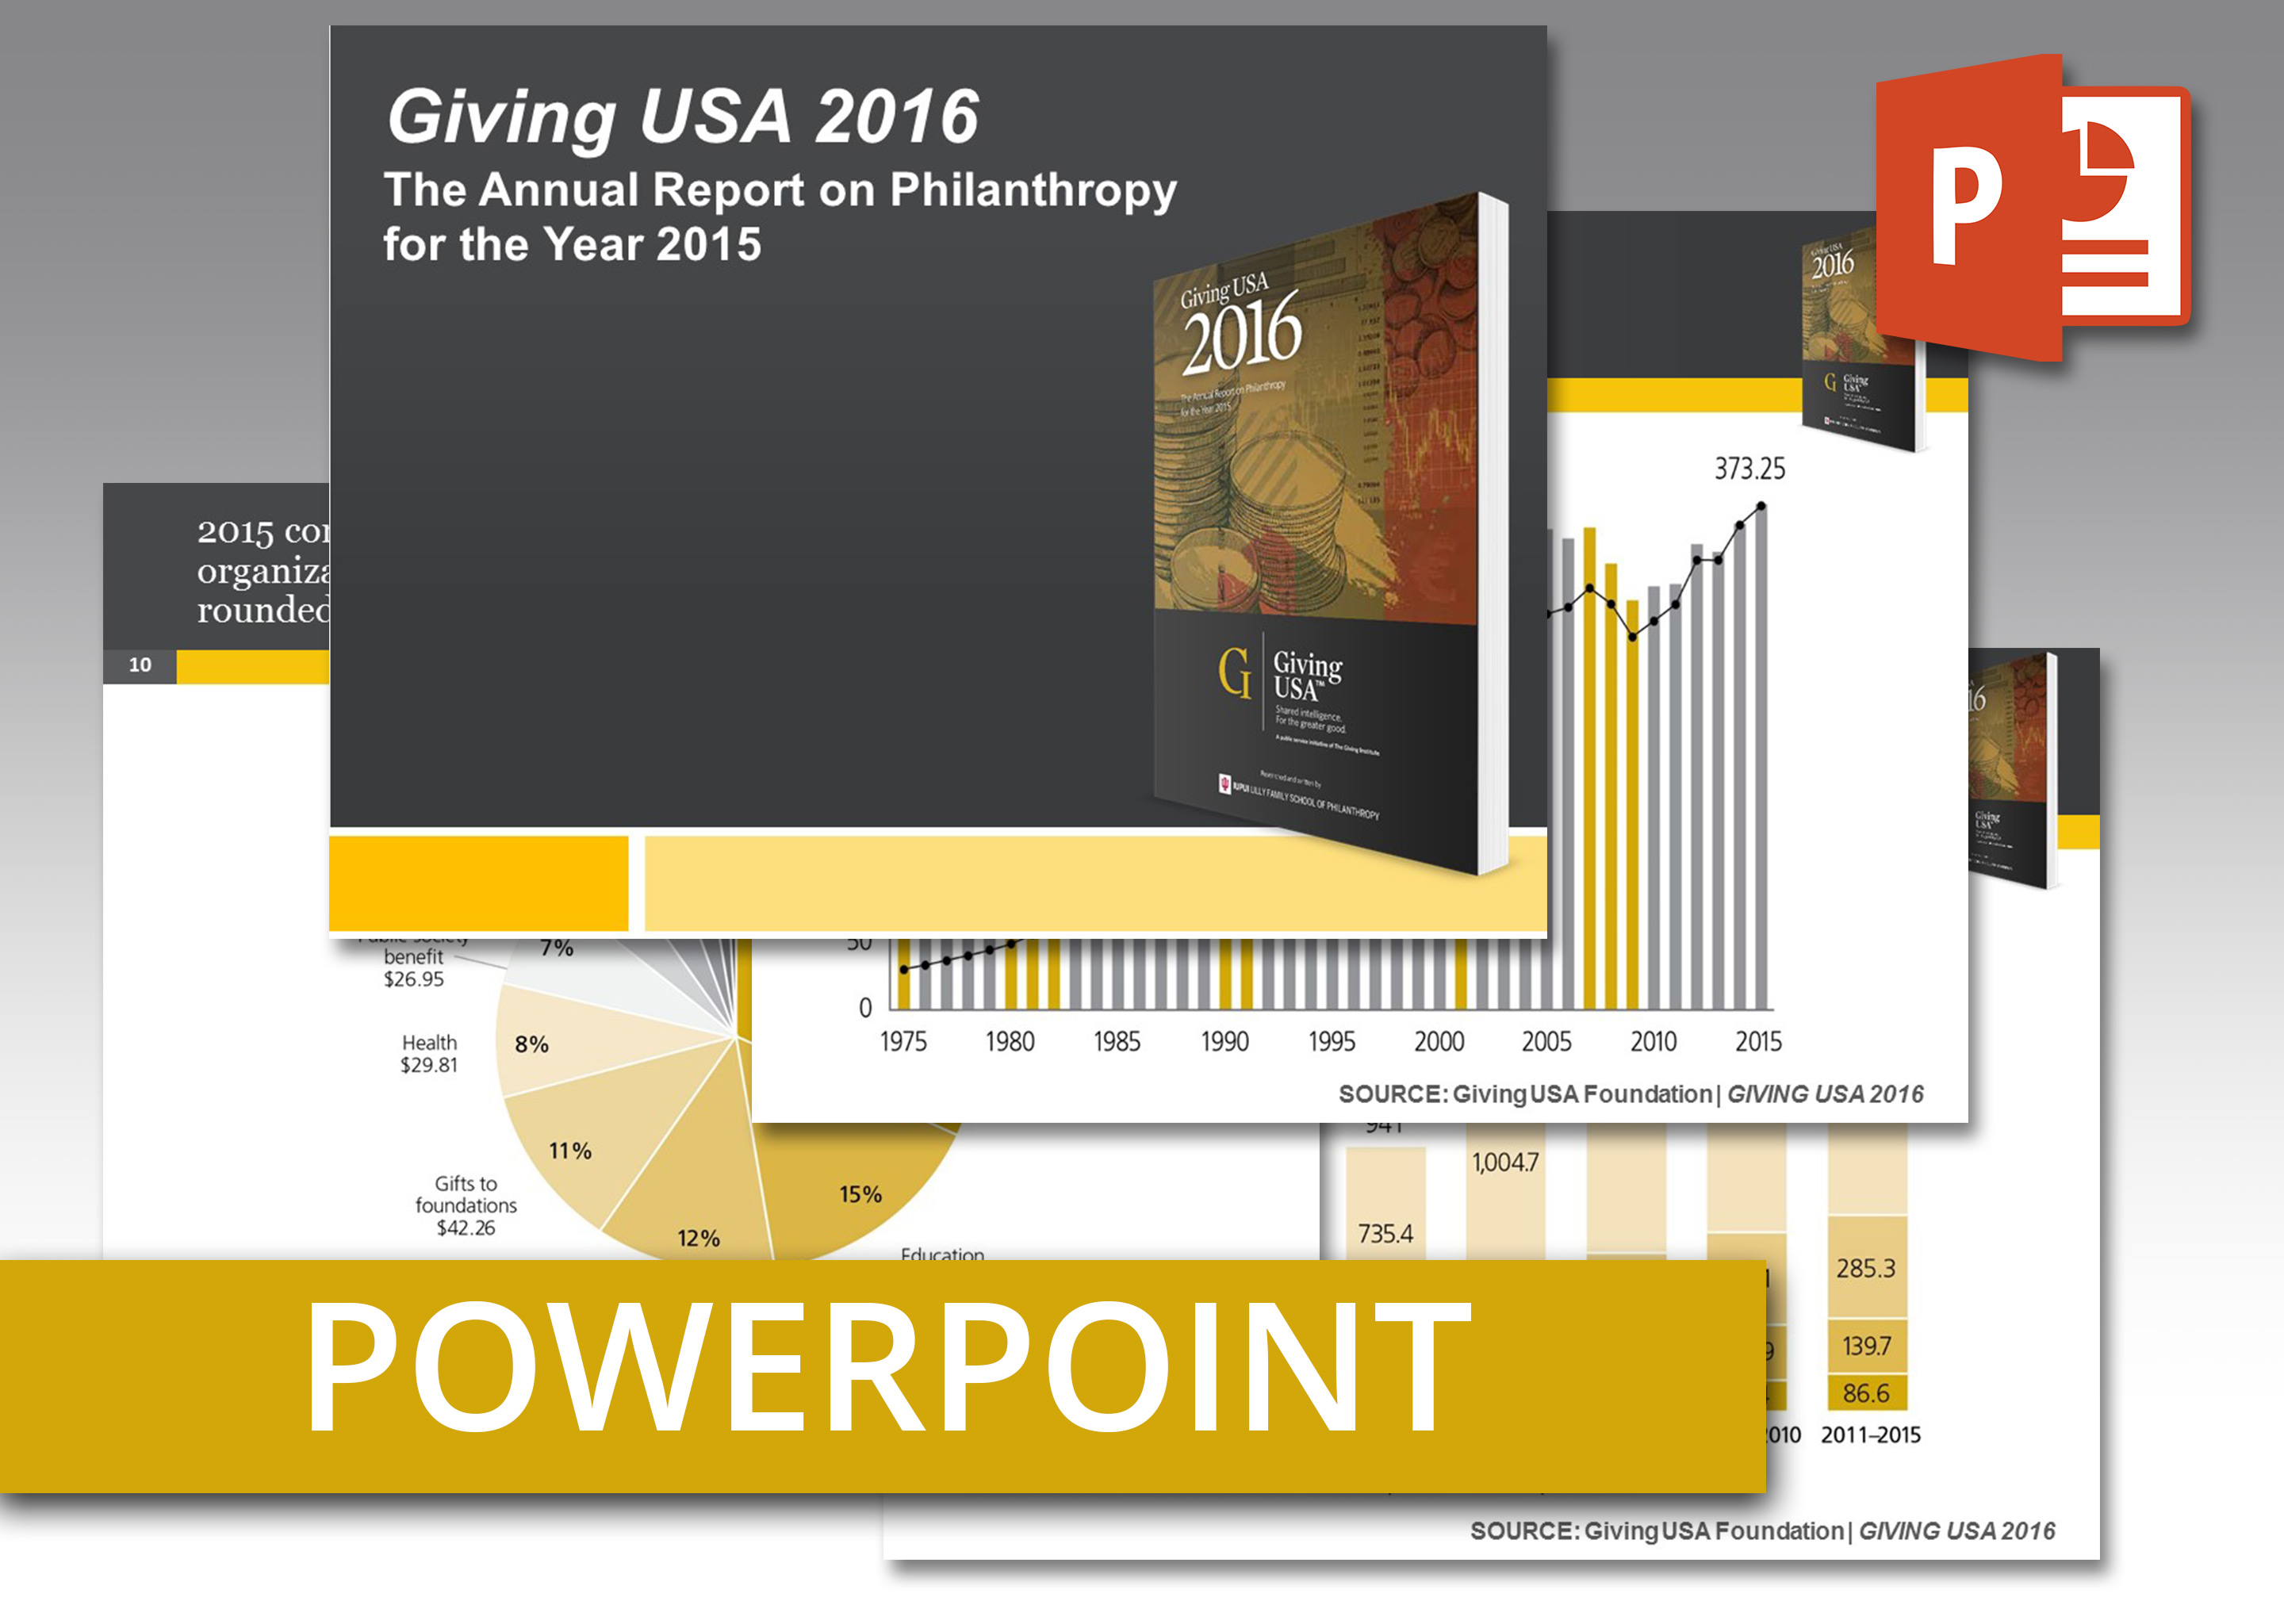 Usdgus  Surprising Giving Usa  Powerpoint An Easytouse Presentation Of Report  With Fair Giving Usa  Powerpoint An Easytouse Presentation Of Report Findings Including Talking Points With Charming Powerpoint To Word Document Also Powerpoint Templates Size In Addition Download Powerpoint  Free And Conflict Resolution Powerpoint Presentation As Well As Effective Powerpoint Templates Additionally Write On Powerpoint Slides From Givingusaorg With Usdgus  Fair Giving Usa  Powerpoint An Easytouse Presentation Of Report  With Charming Giving Usa  Powerpoint An Easytouse Presentation Of Report Findings Including Talking Points And Surprising Powerpoint To Word Document Also Powerpoint Templates Size In Addition Download Powerpoint  Free From Givingusaorg